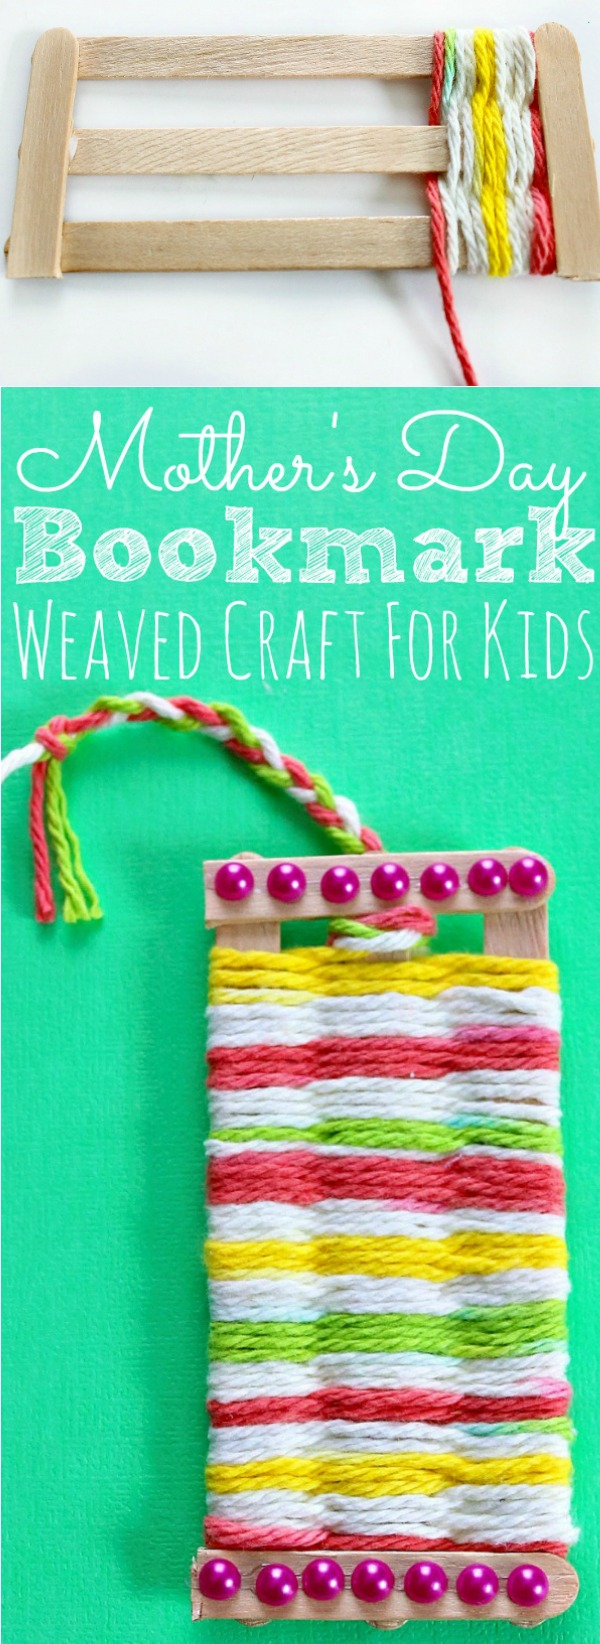 Weaving Bookmark Craft For Kids